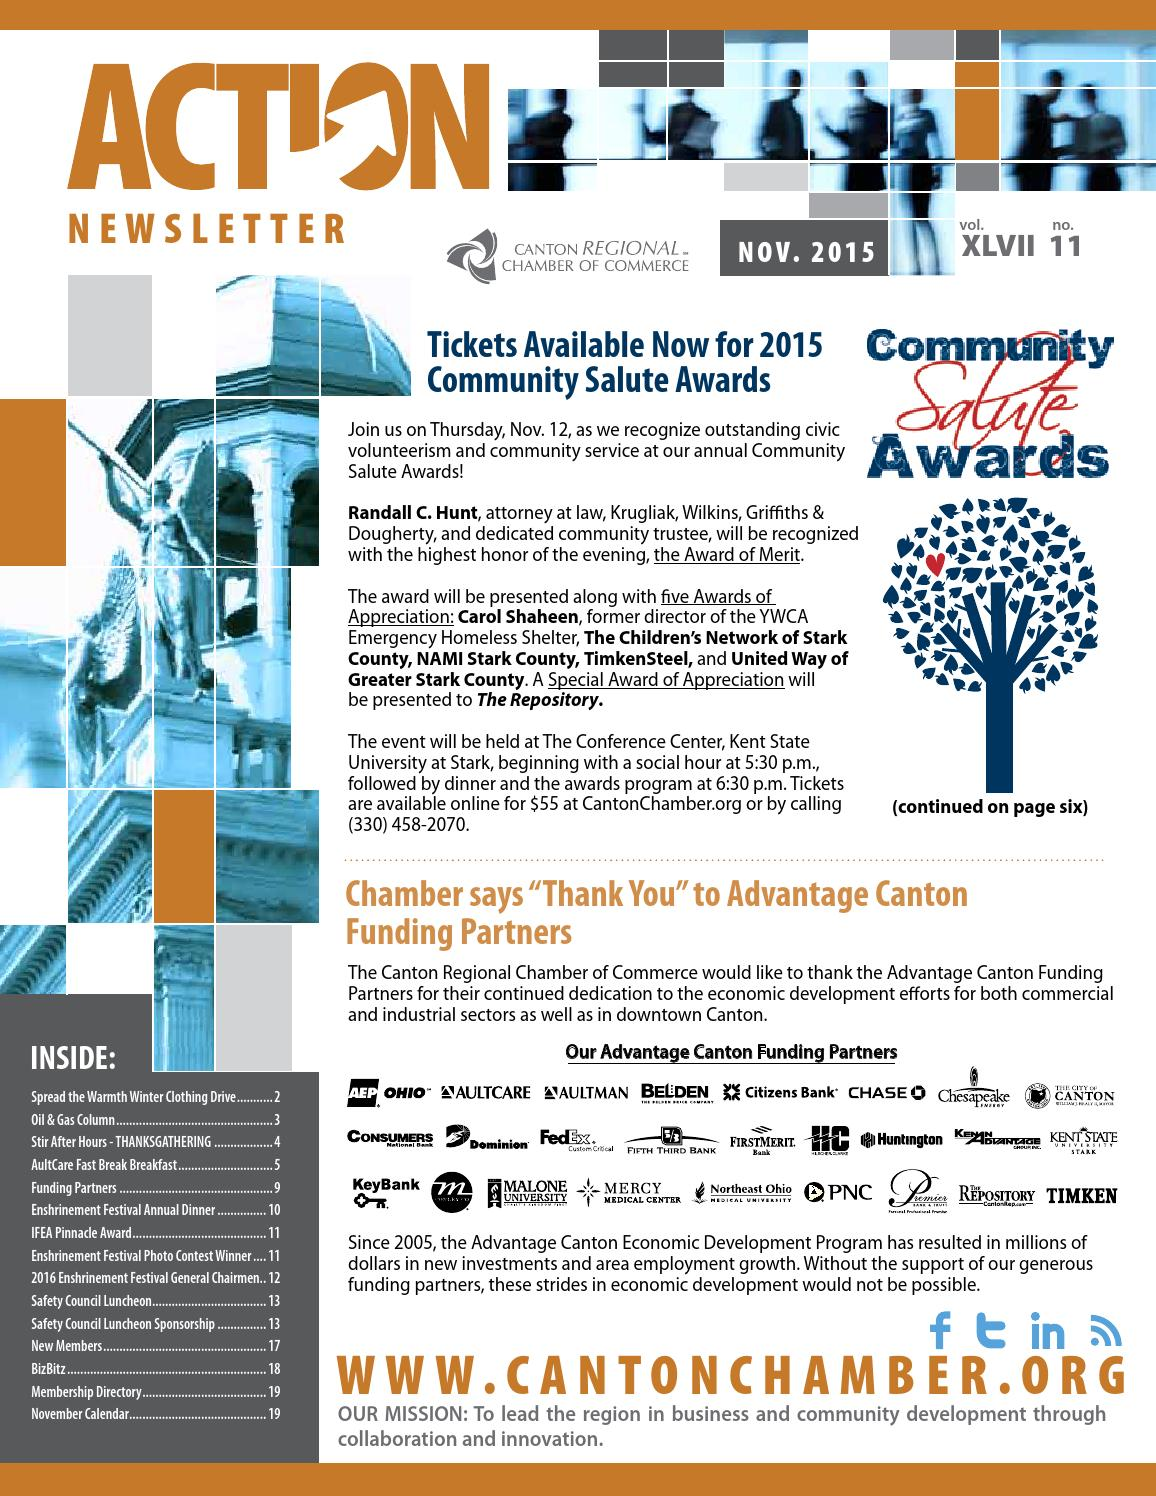 ACTION Newsletter, Nov  2015 by Canton Regional Chamber of